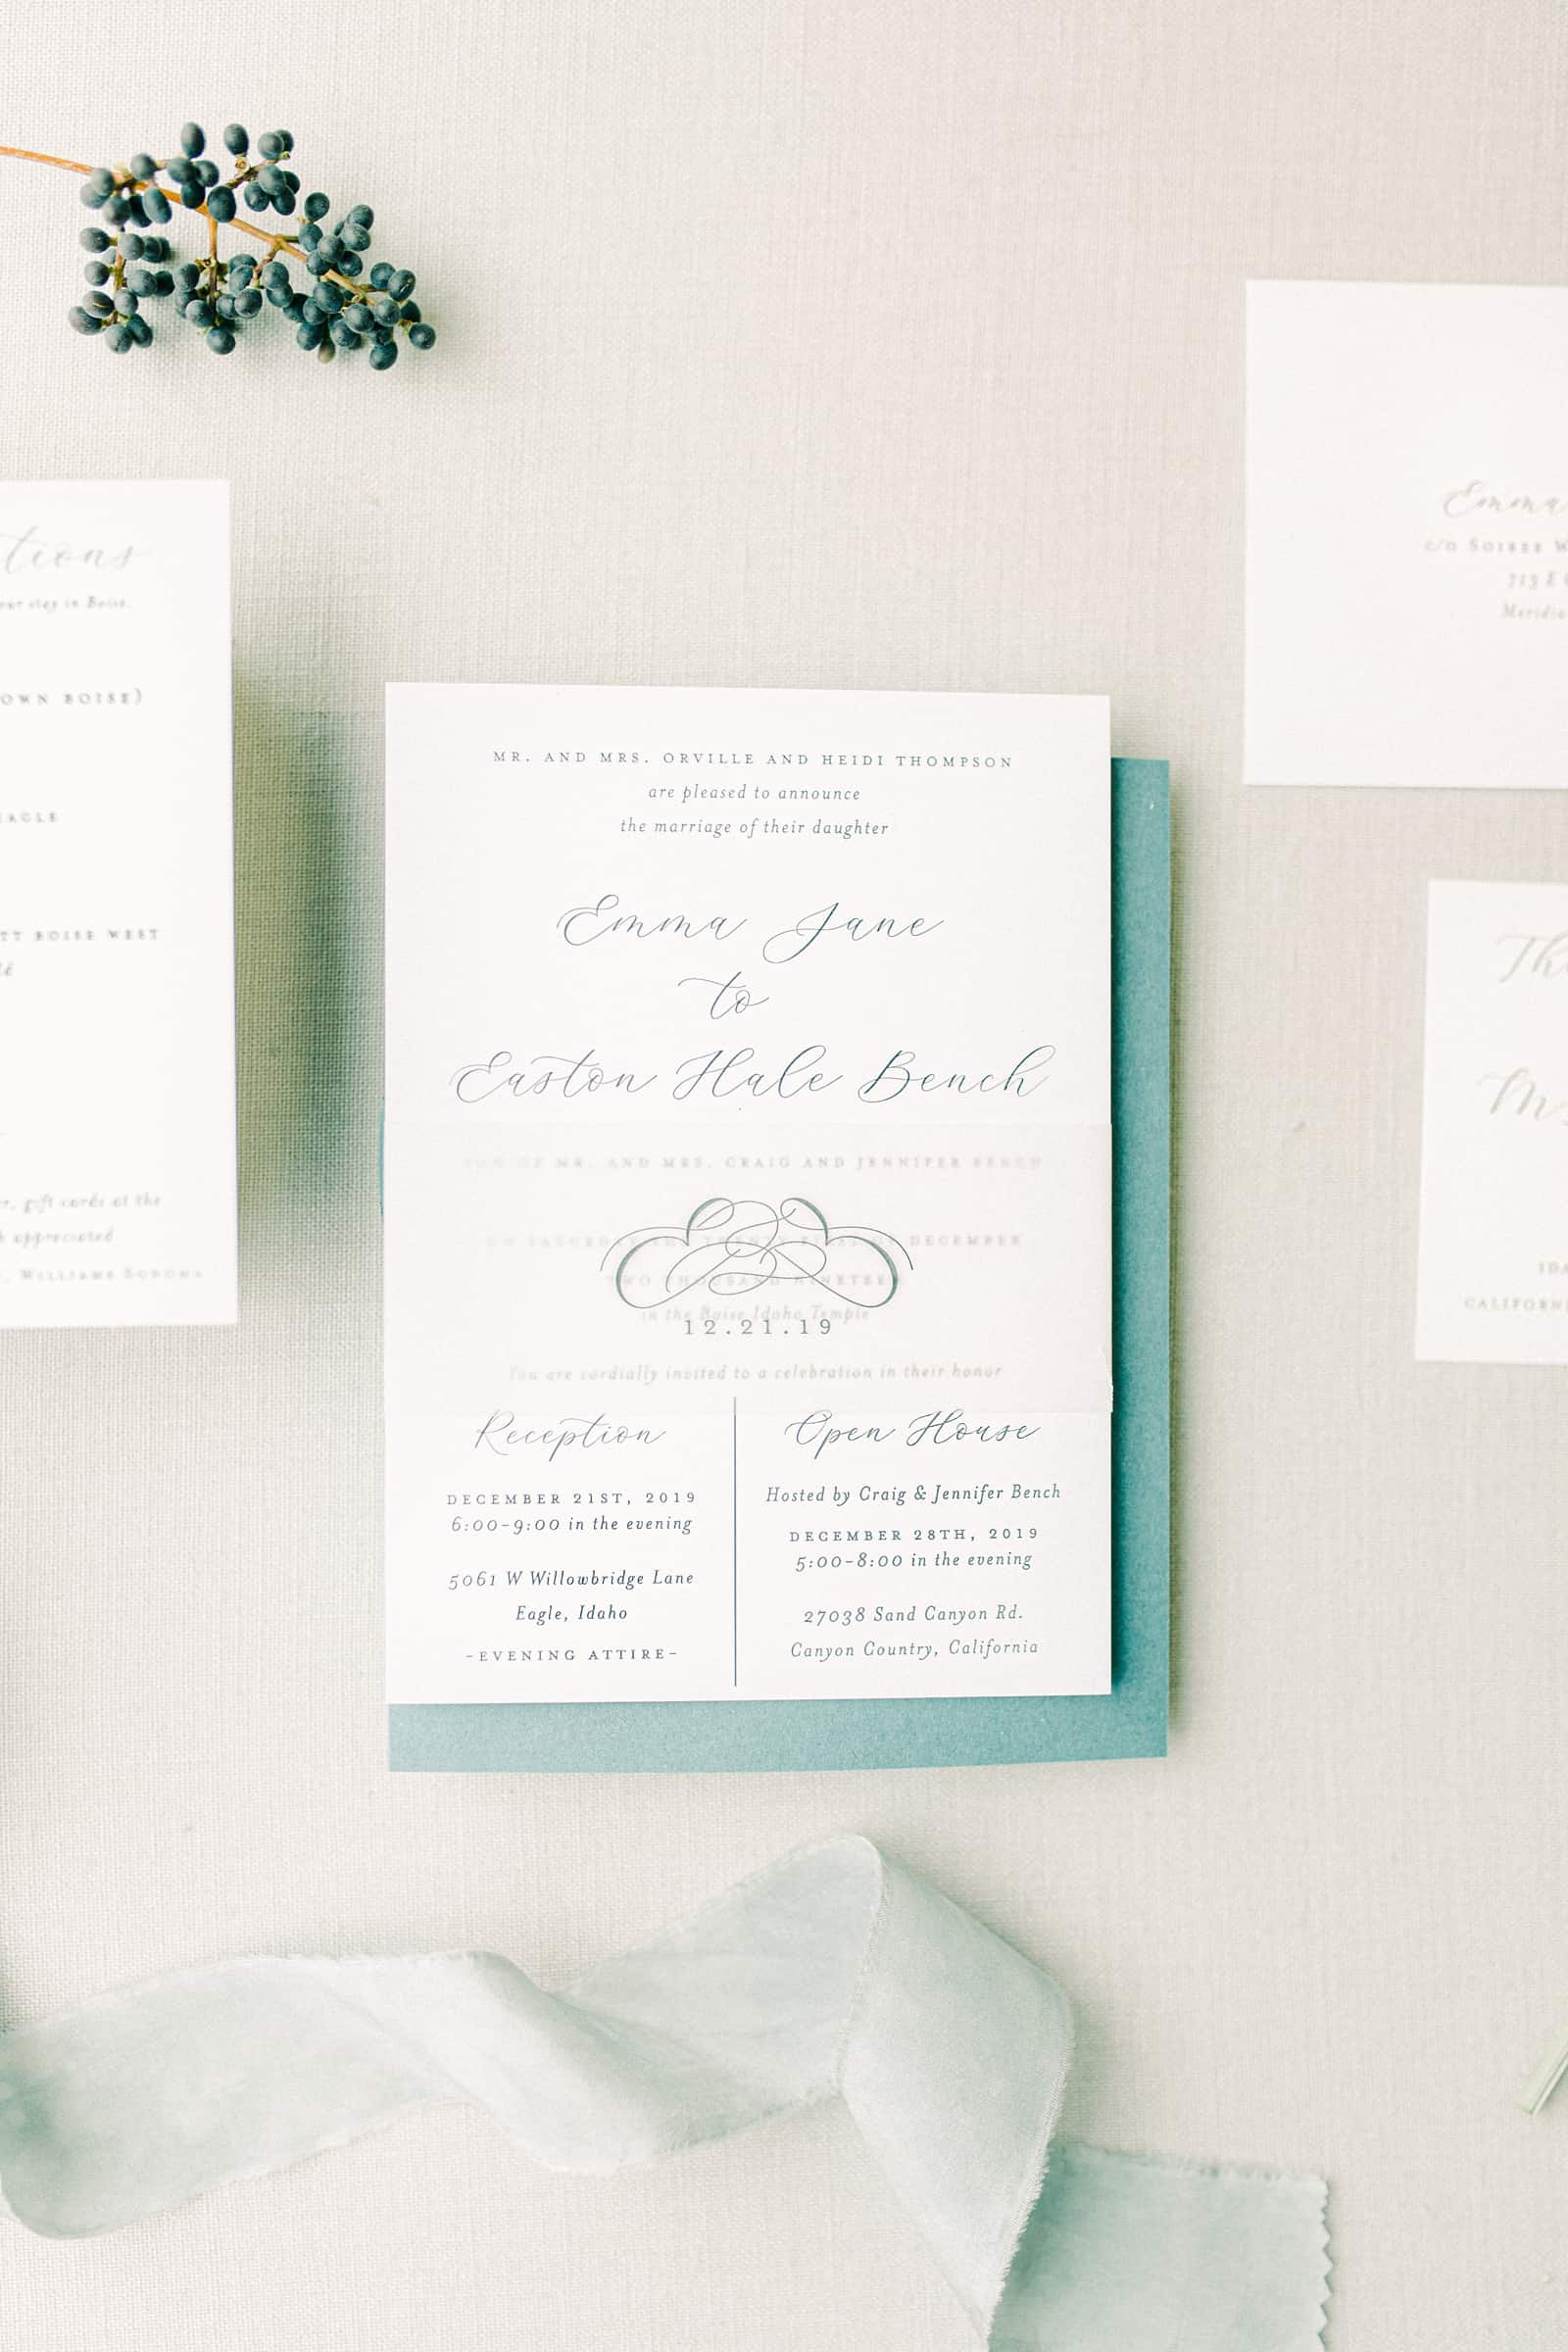 Simple, elegant calligraphy wedding invitations for winter wedding